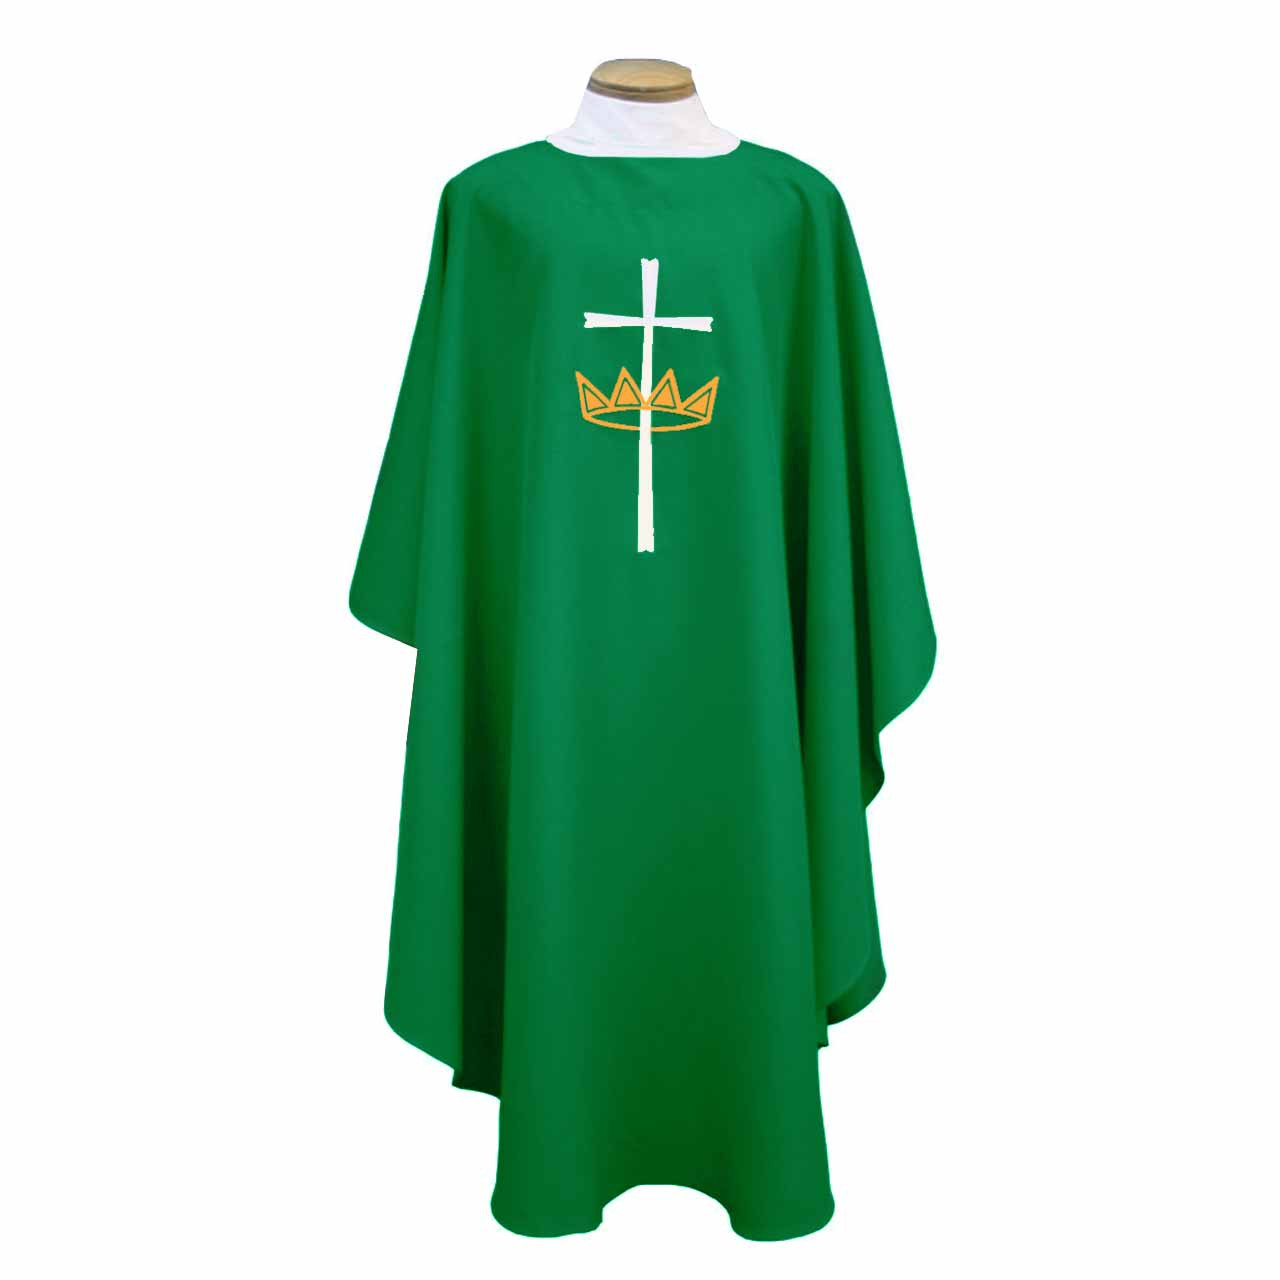 842 Green Chasuble from Beau Veste